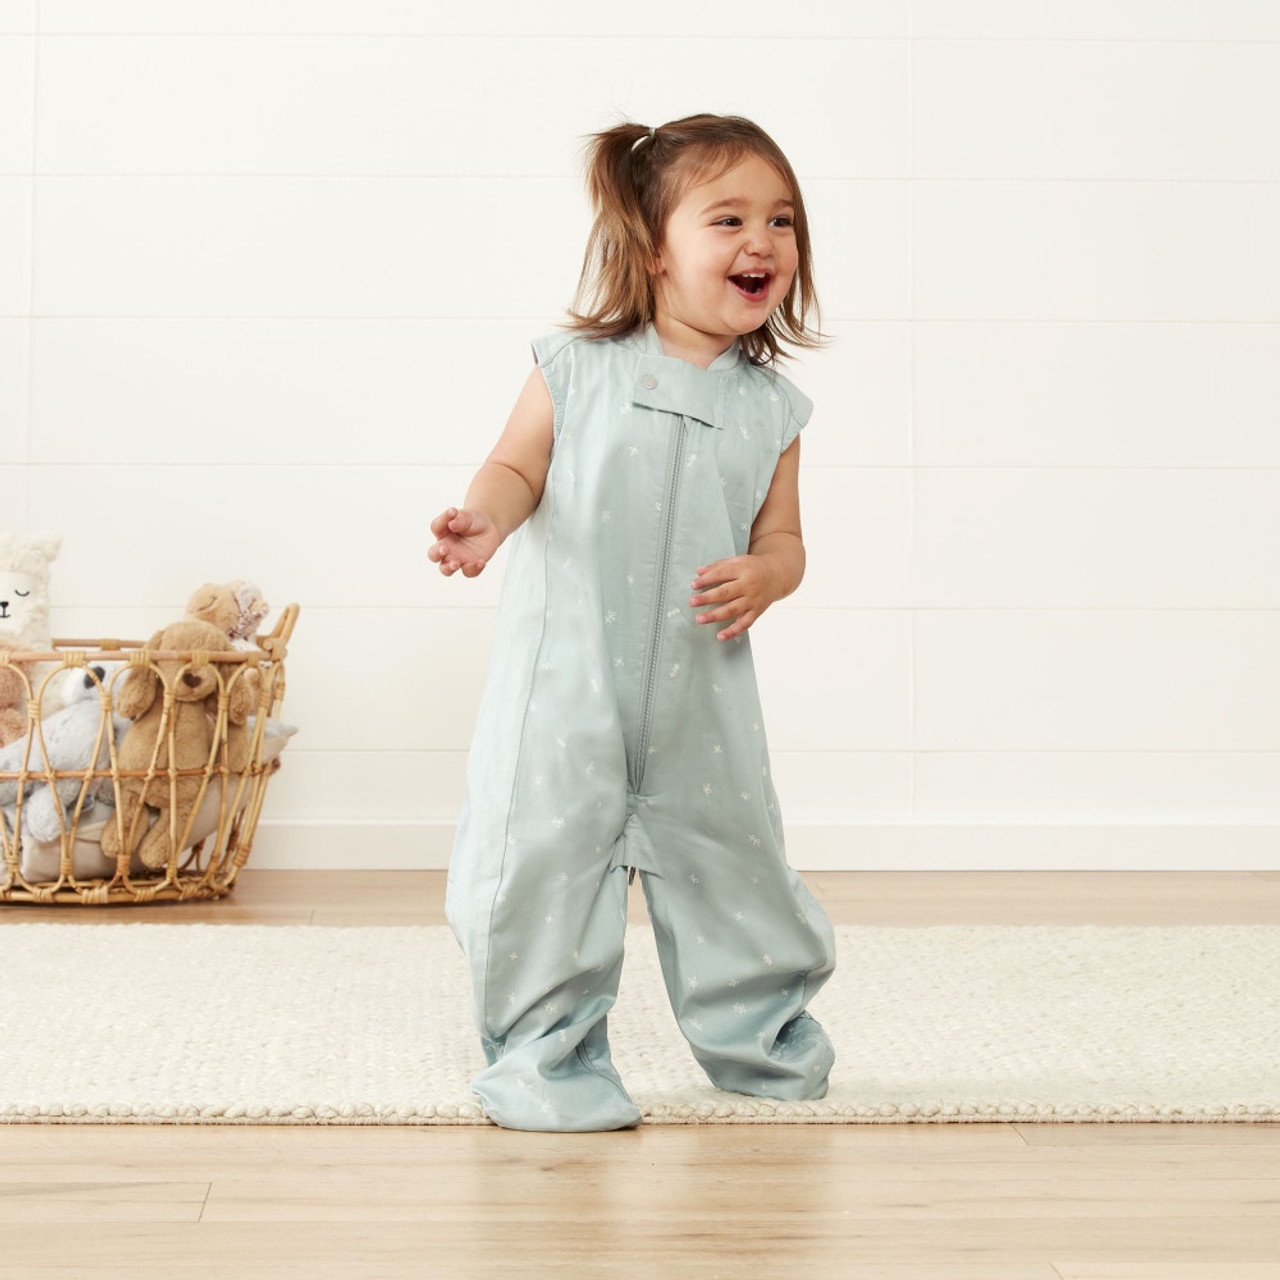 Ergopouch Sleep Suit Bag 0.3 Tog 2-4 Years at Baby Barn Discounts